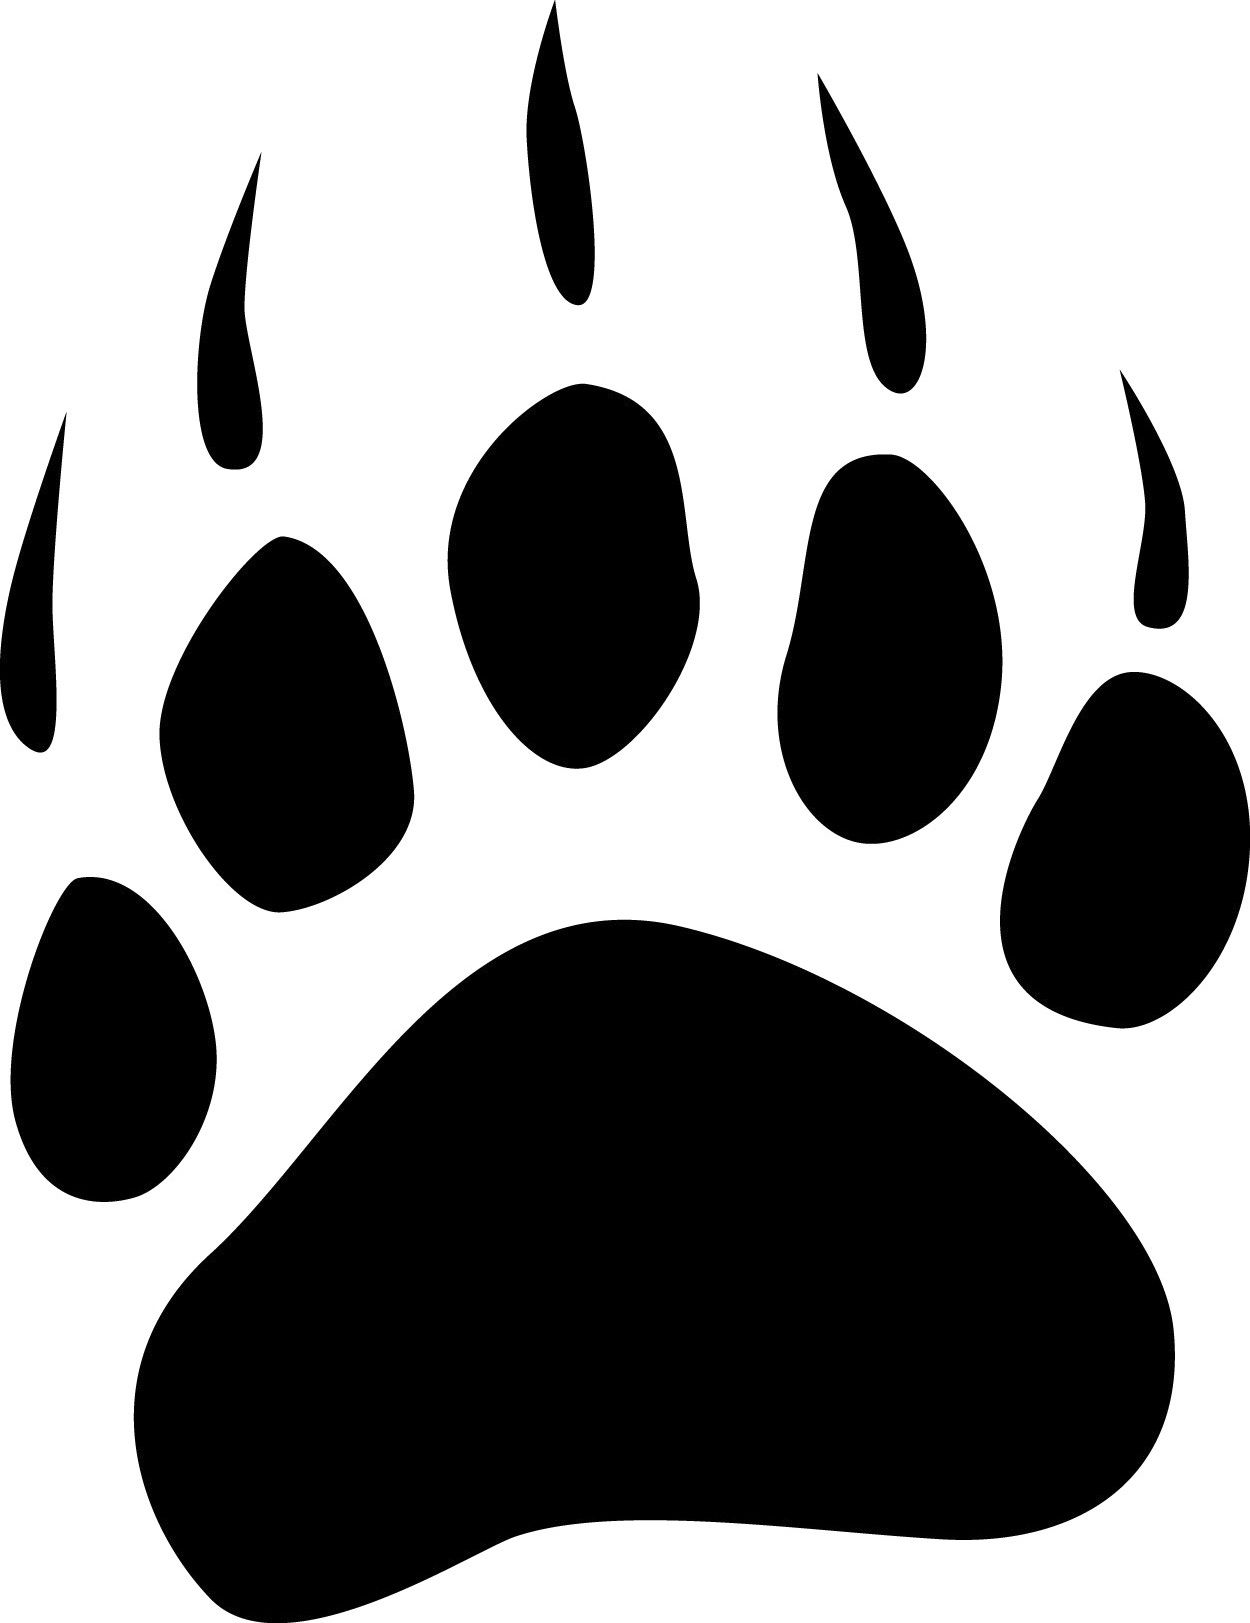 1191 views stencil 2 pinterest bears tattoo and bear paws rh pinterest com bear paw print border clip art bear paw print clip art 5 toes